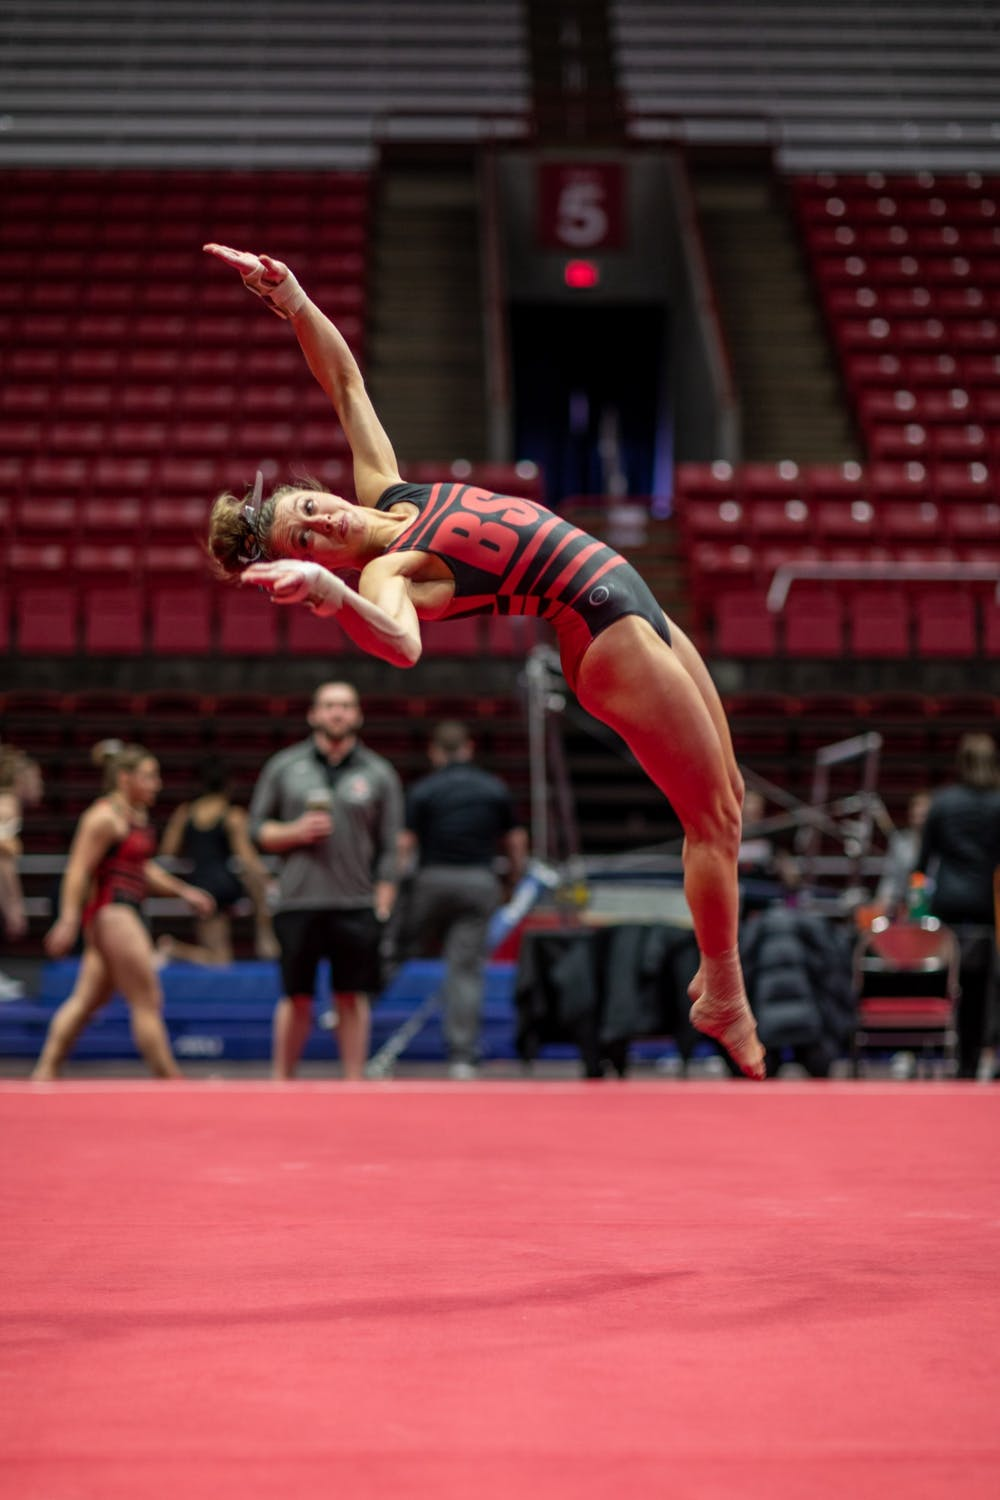 <p>Ball State Senior, Maddie Macdonald competes in the floor routine during the gymnastics home opener, Jan. 26, 2020 in John E. Worthen Arena. The Cardinals secured a win by putting up 194.2 points. <strong>Paul Kihn, DN</strong></p>